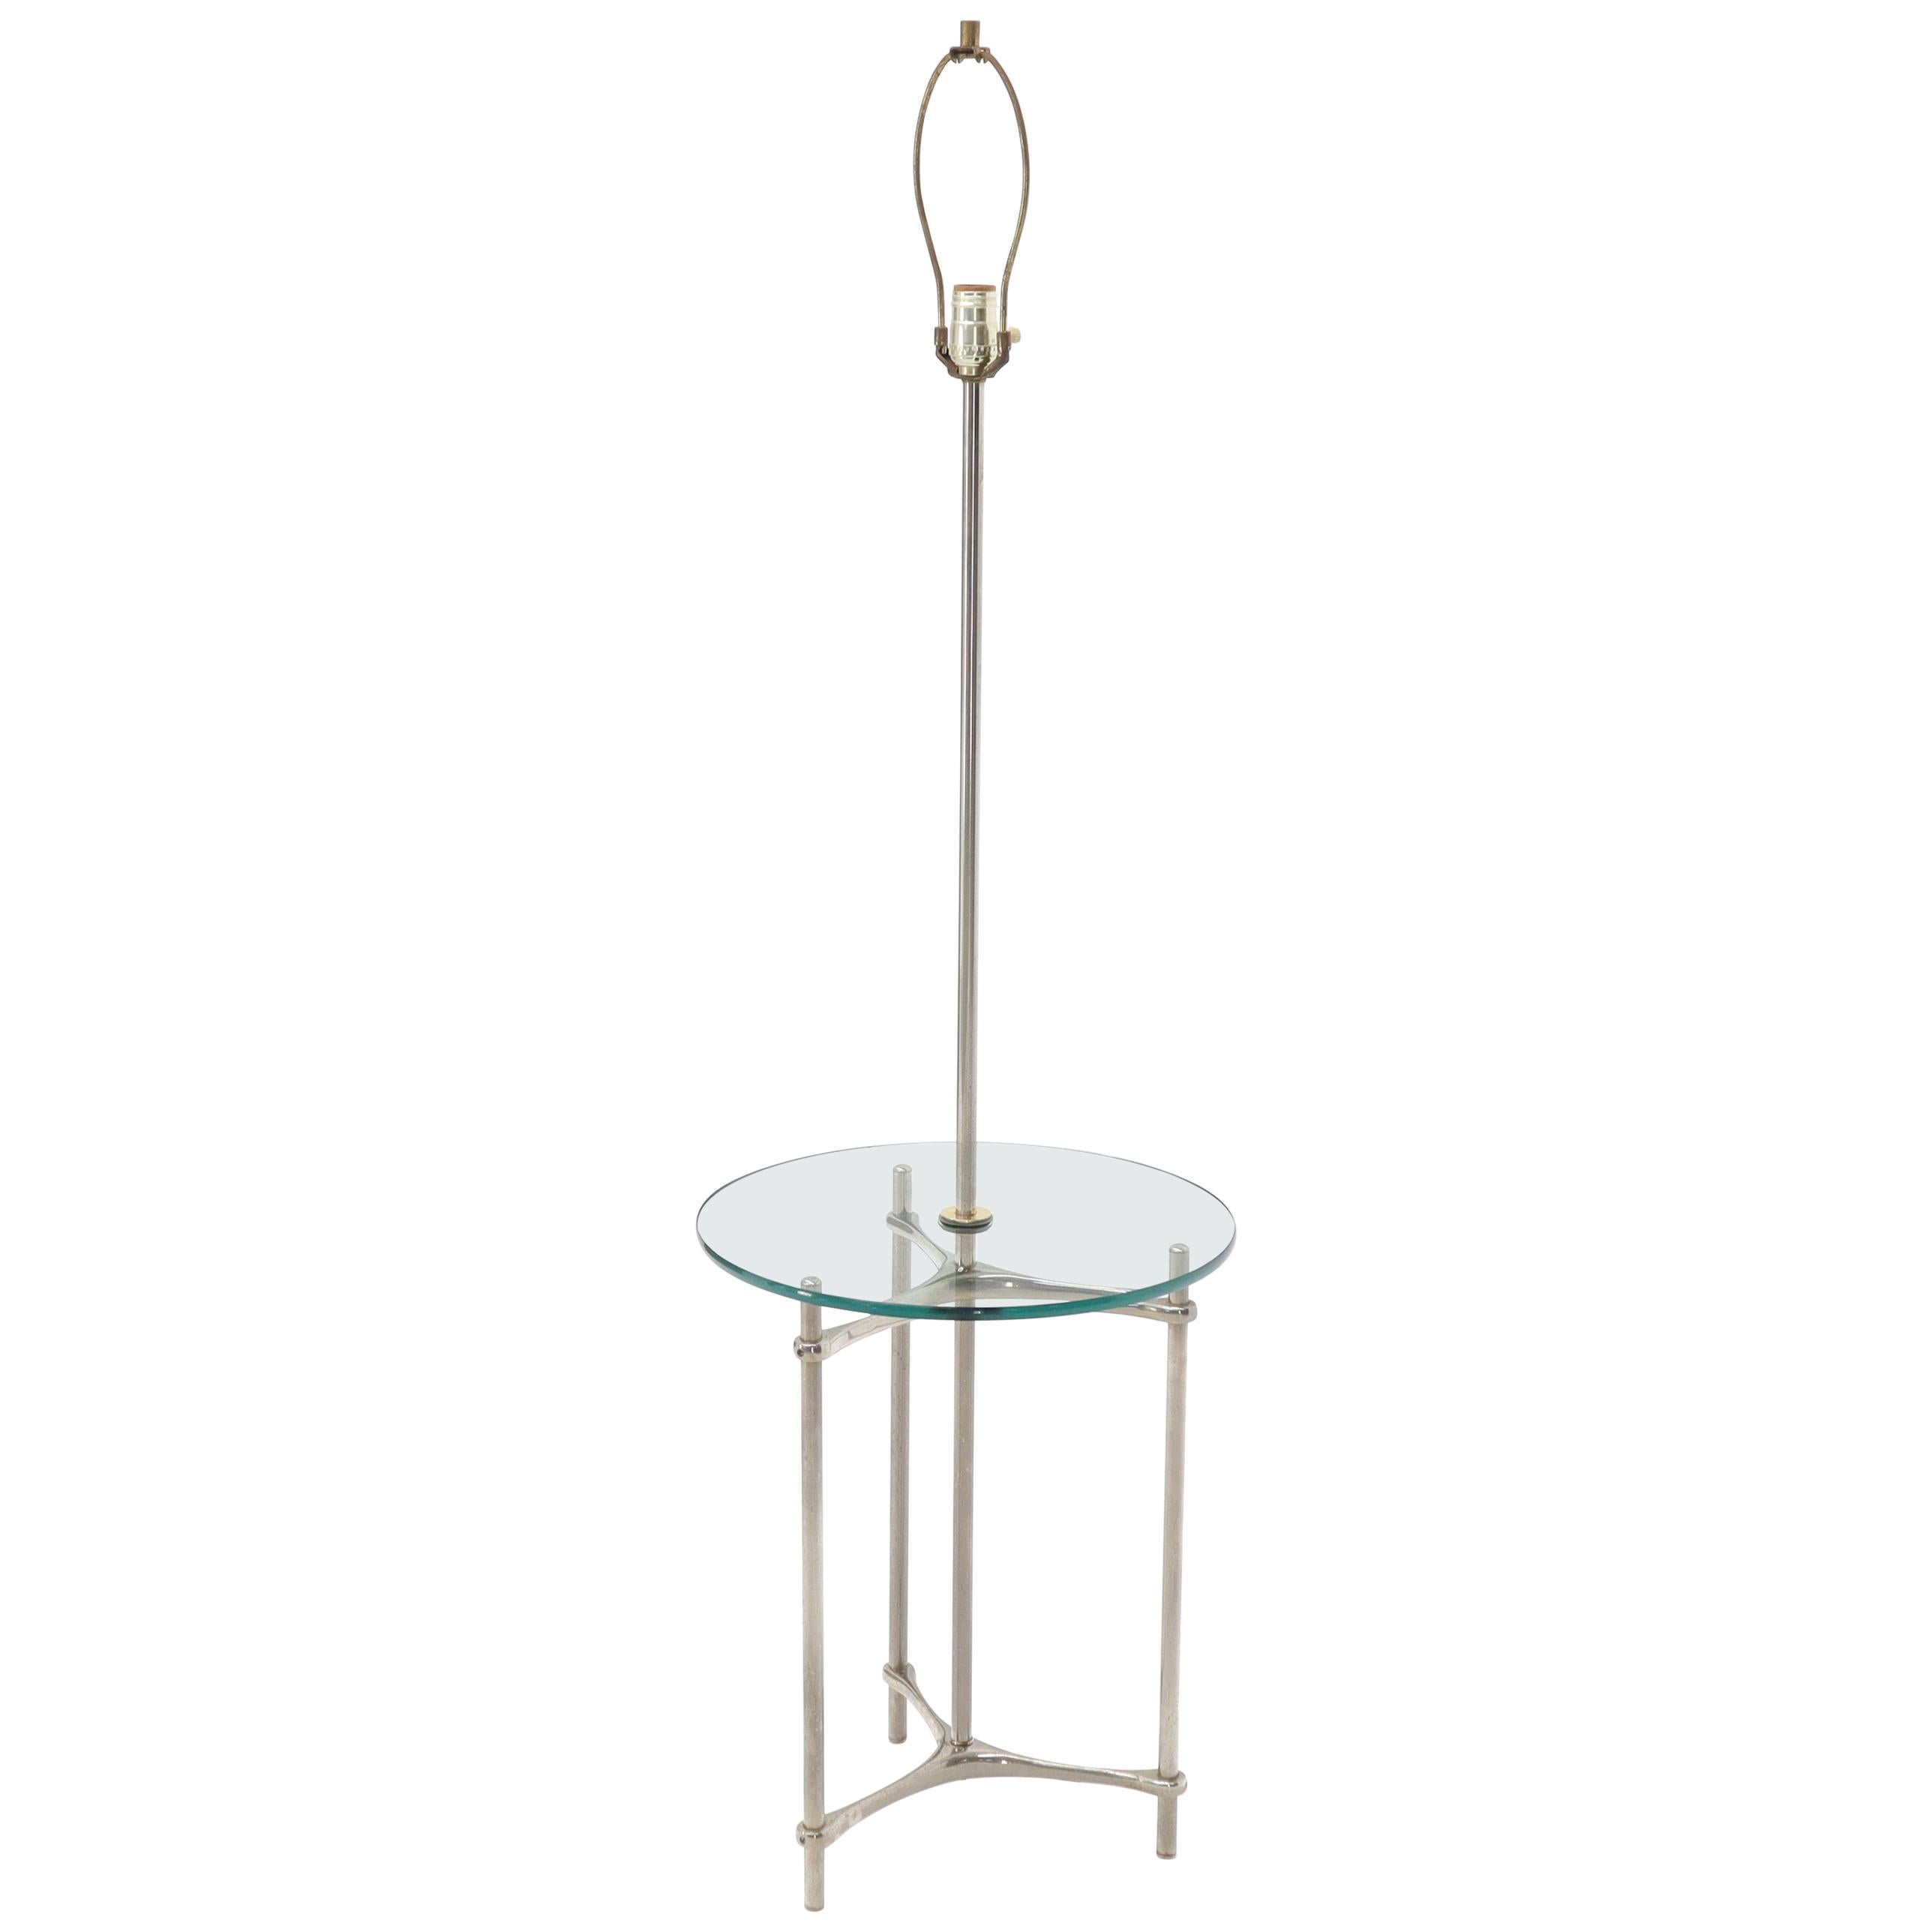 Crome Tripod Base Glass Side Table Floor Lamp